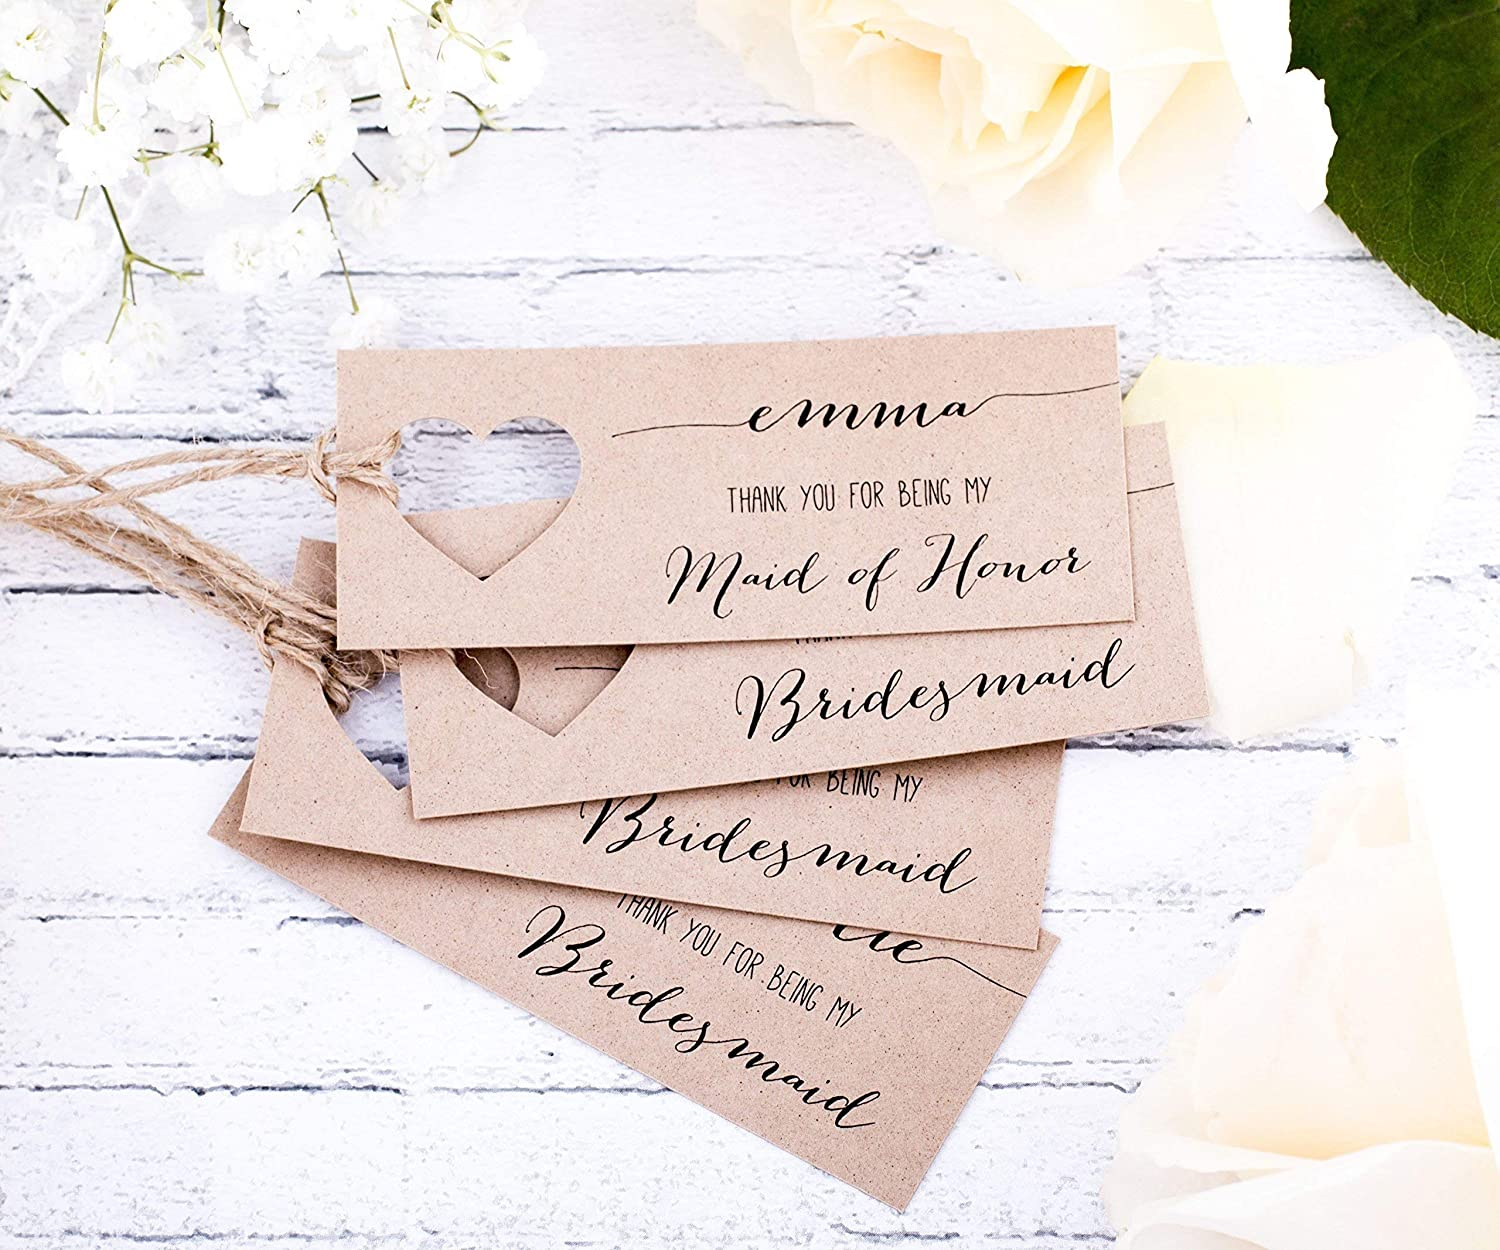 B01FYB9P2I Thank You for being my Bridesmaid Gift Tags. Custom Bridesmaid, Maid of Honor Gift Tags. Bridesmaid Favor Tags 91pqlEm4ziL